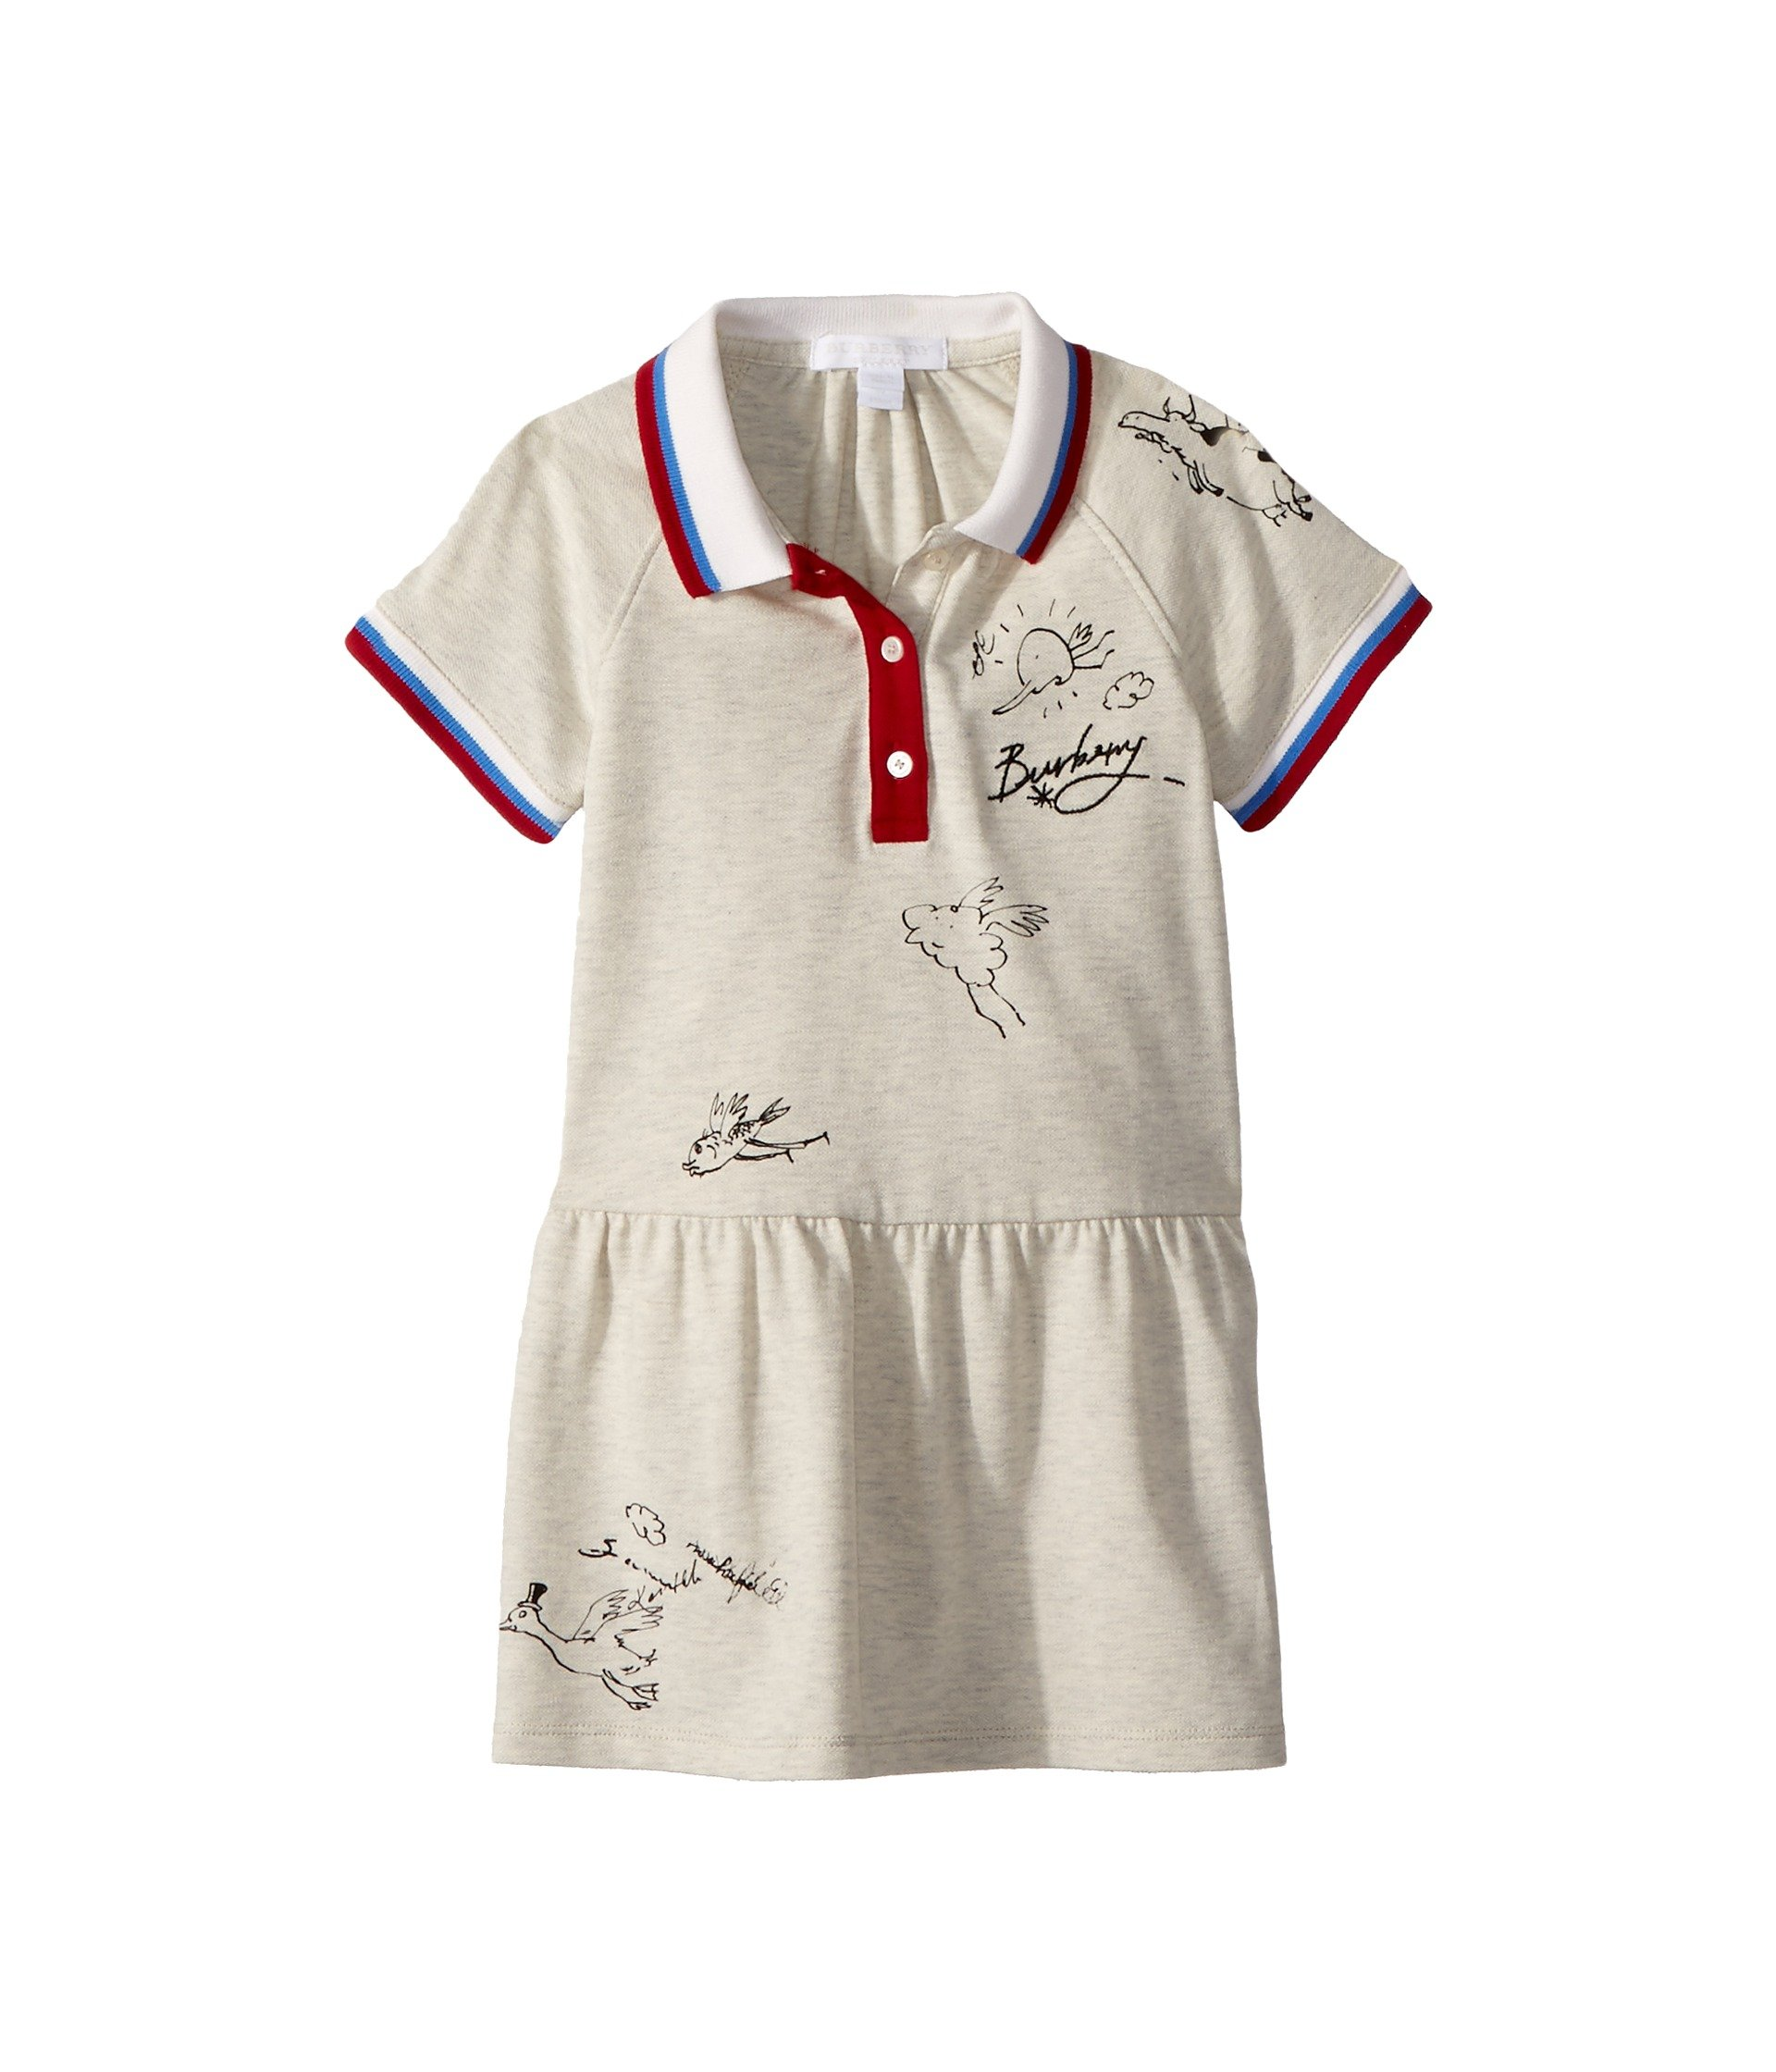 fcd19b5852f1 Burberry Kids Cali N 2 BLY Dress (Infant Toddler) at Luxury.Zappos.com